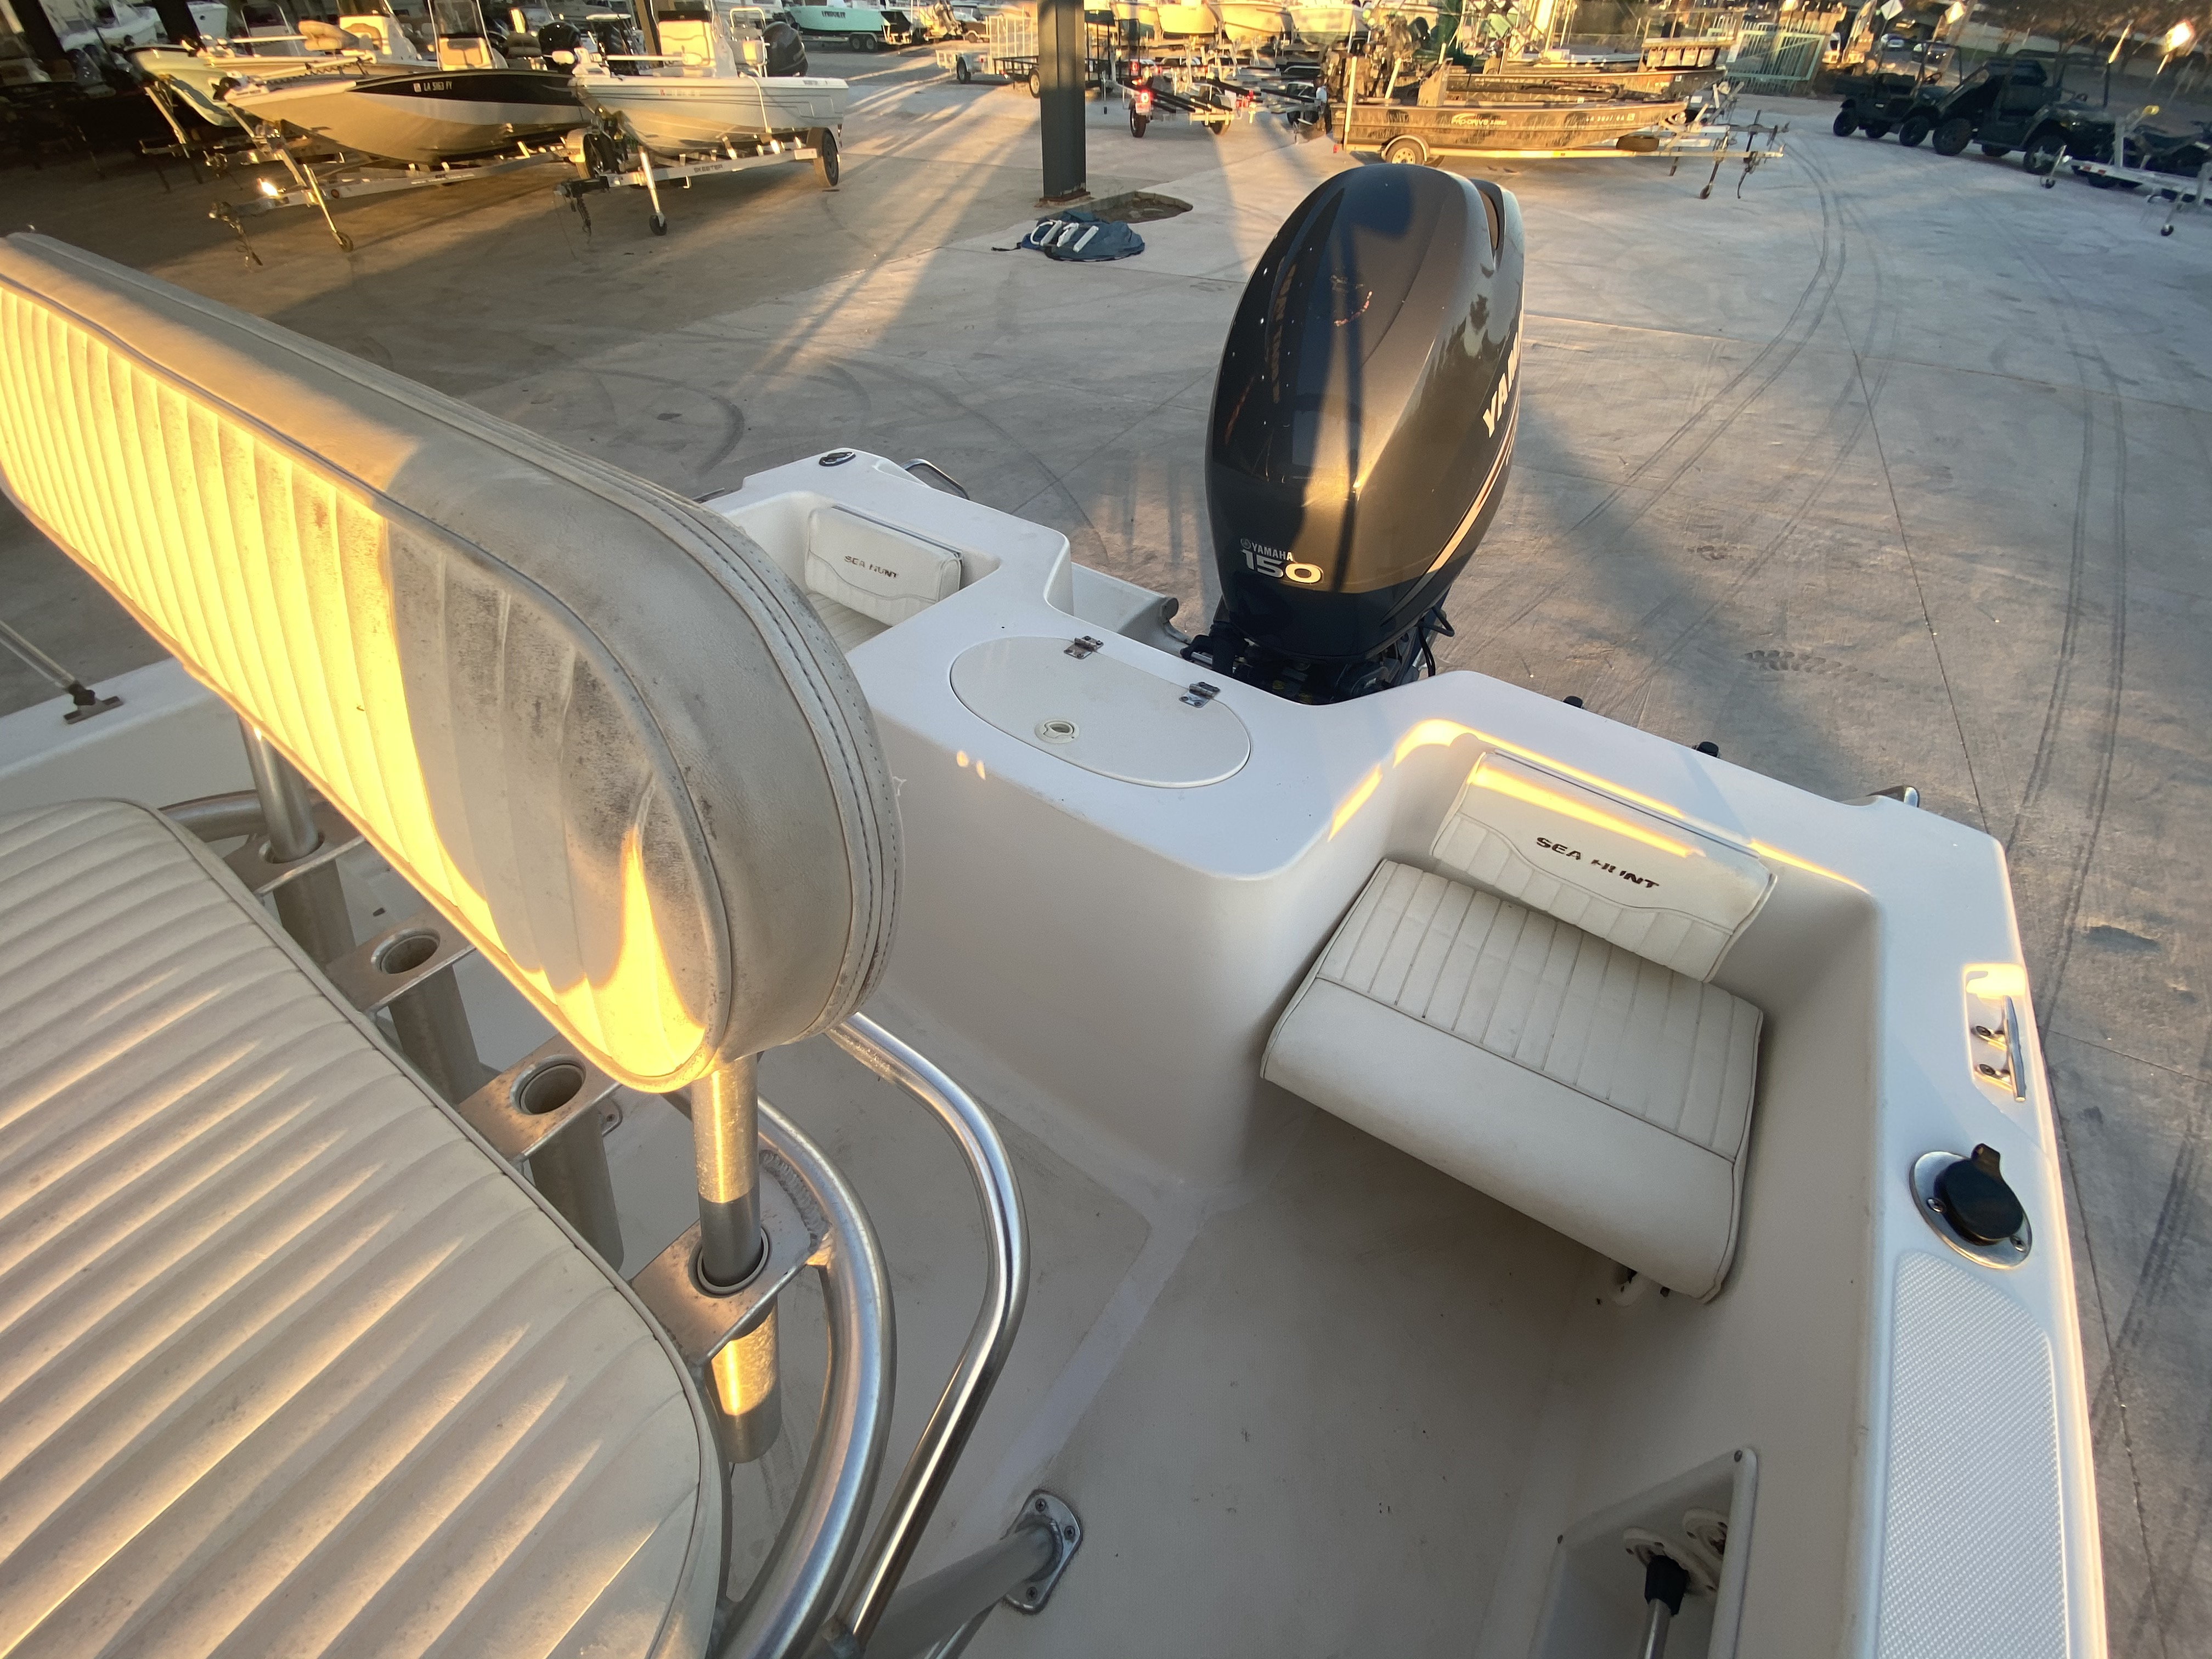 2007 Sea Hunt boat for sale, model of the boat is 207 Triton & Image # 24 of 28